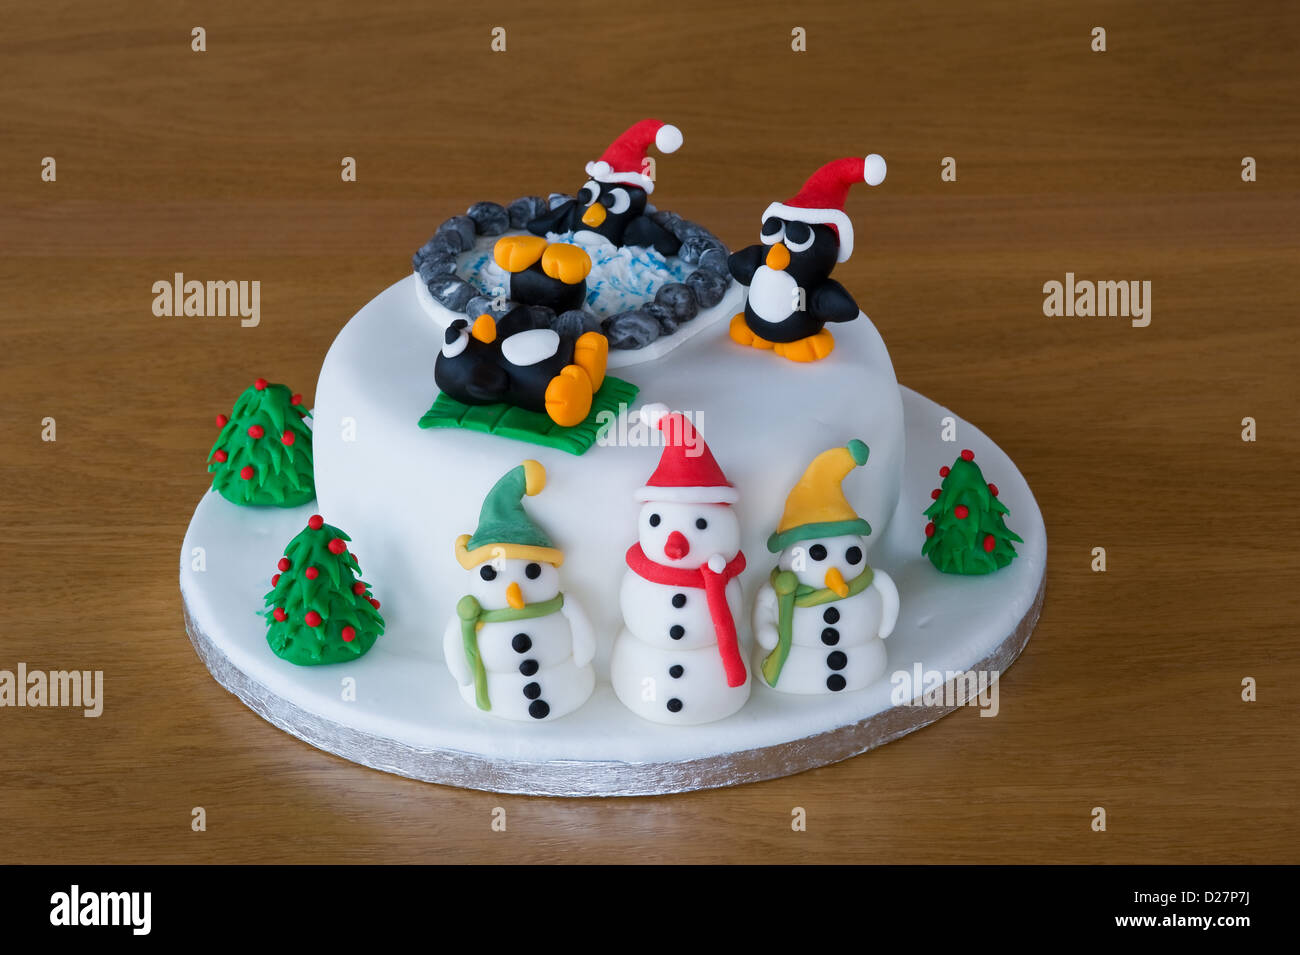 Novelty Christmas Cake Images : Novelty christmas cake, decorated with amusing penguins ...